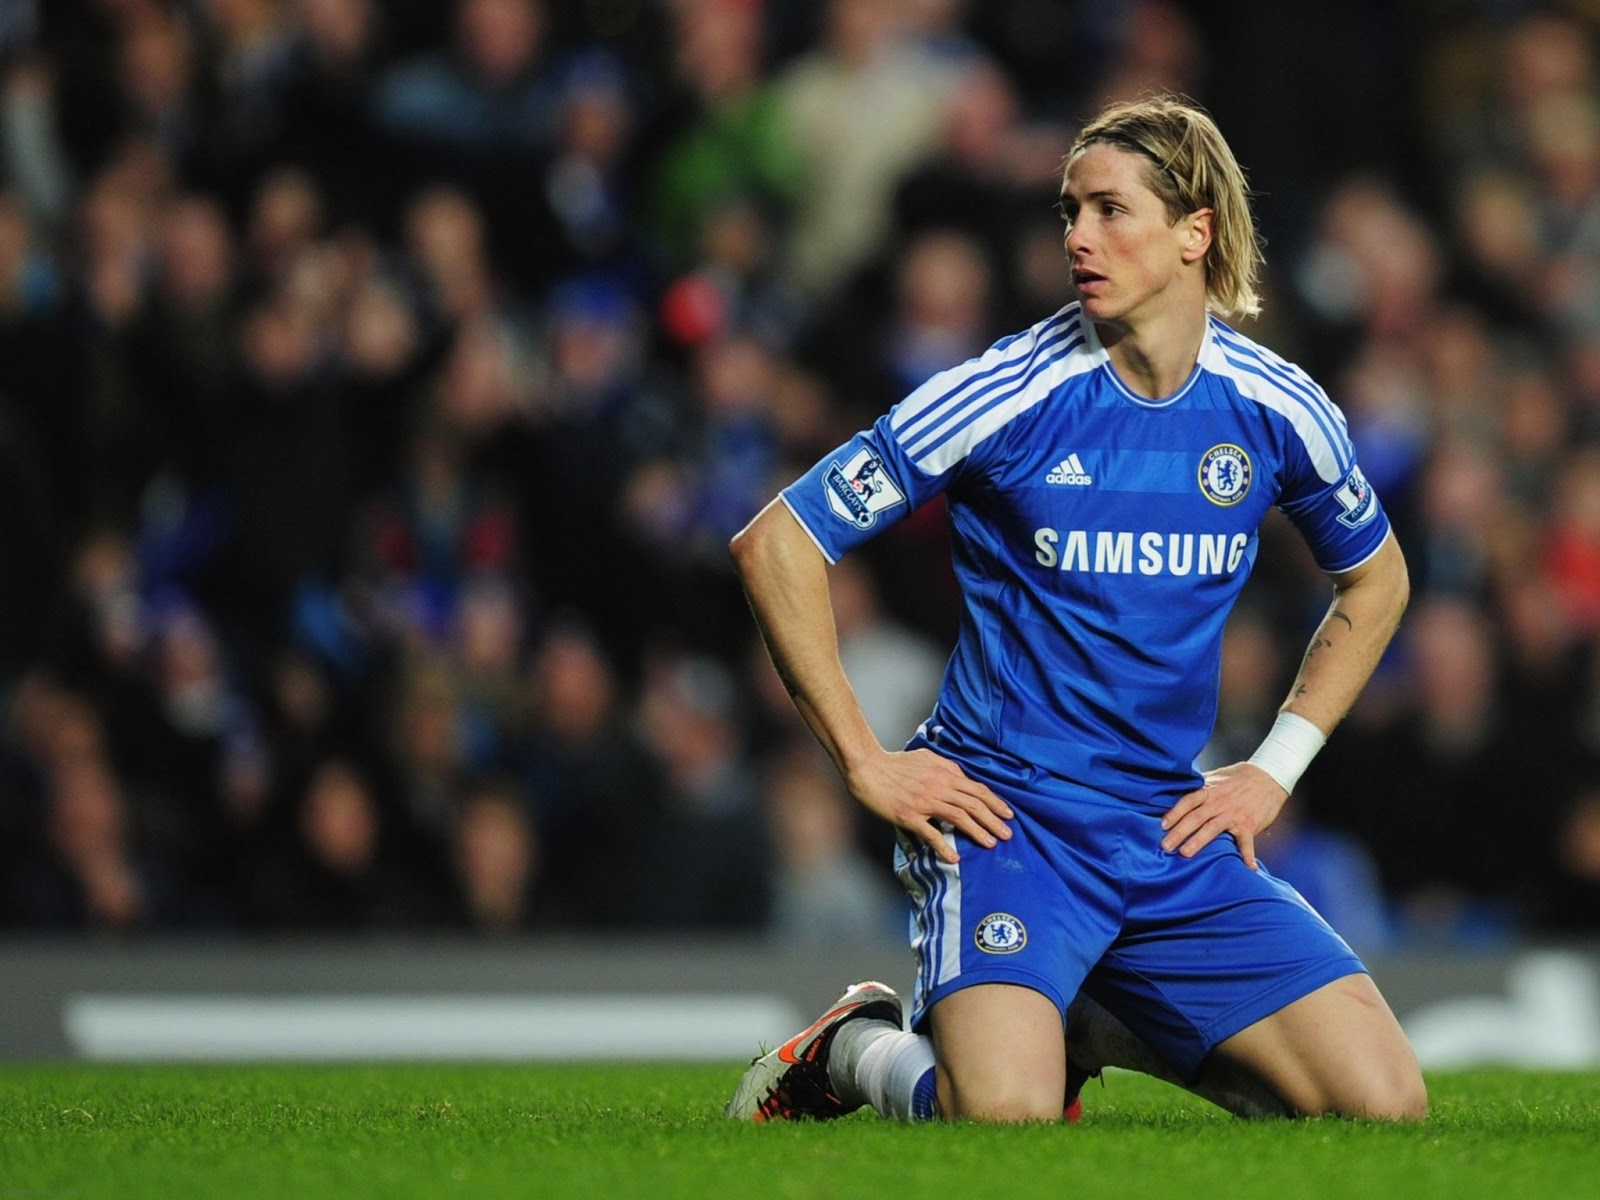 fernando torres new hd wallpapers 2013 | all football players hd